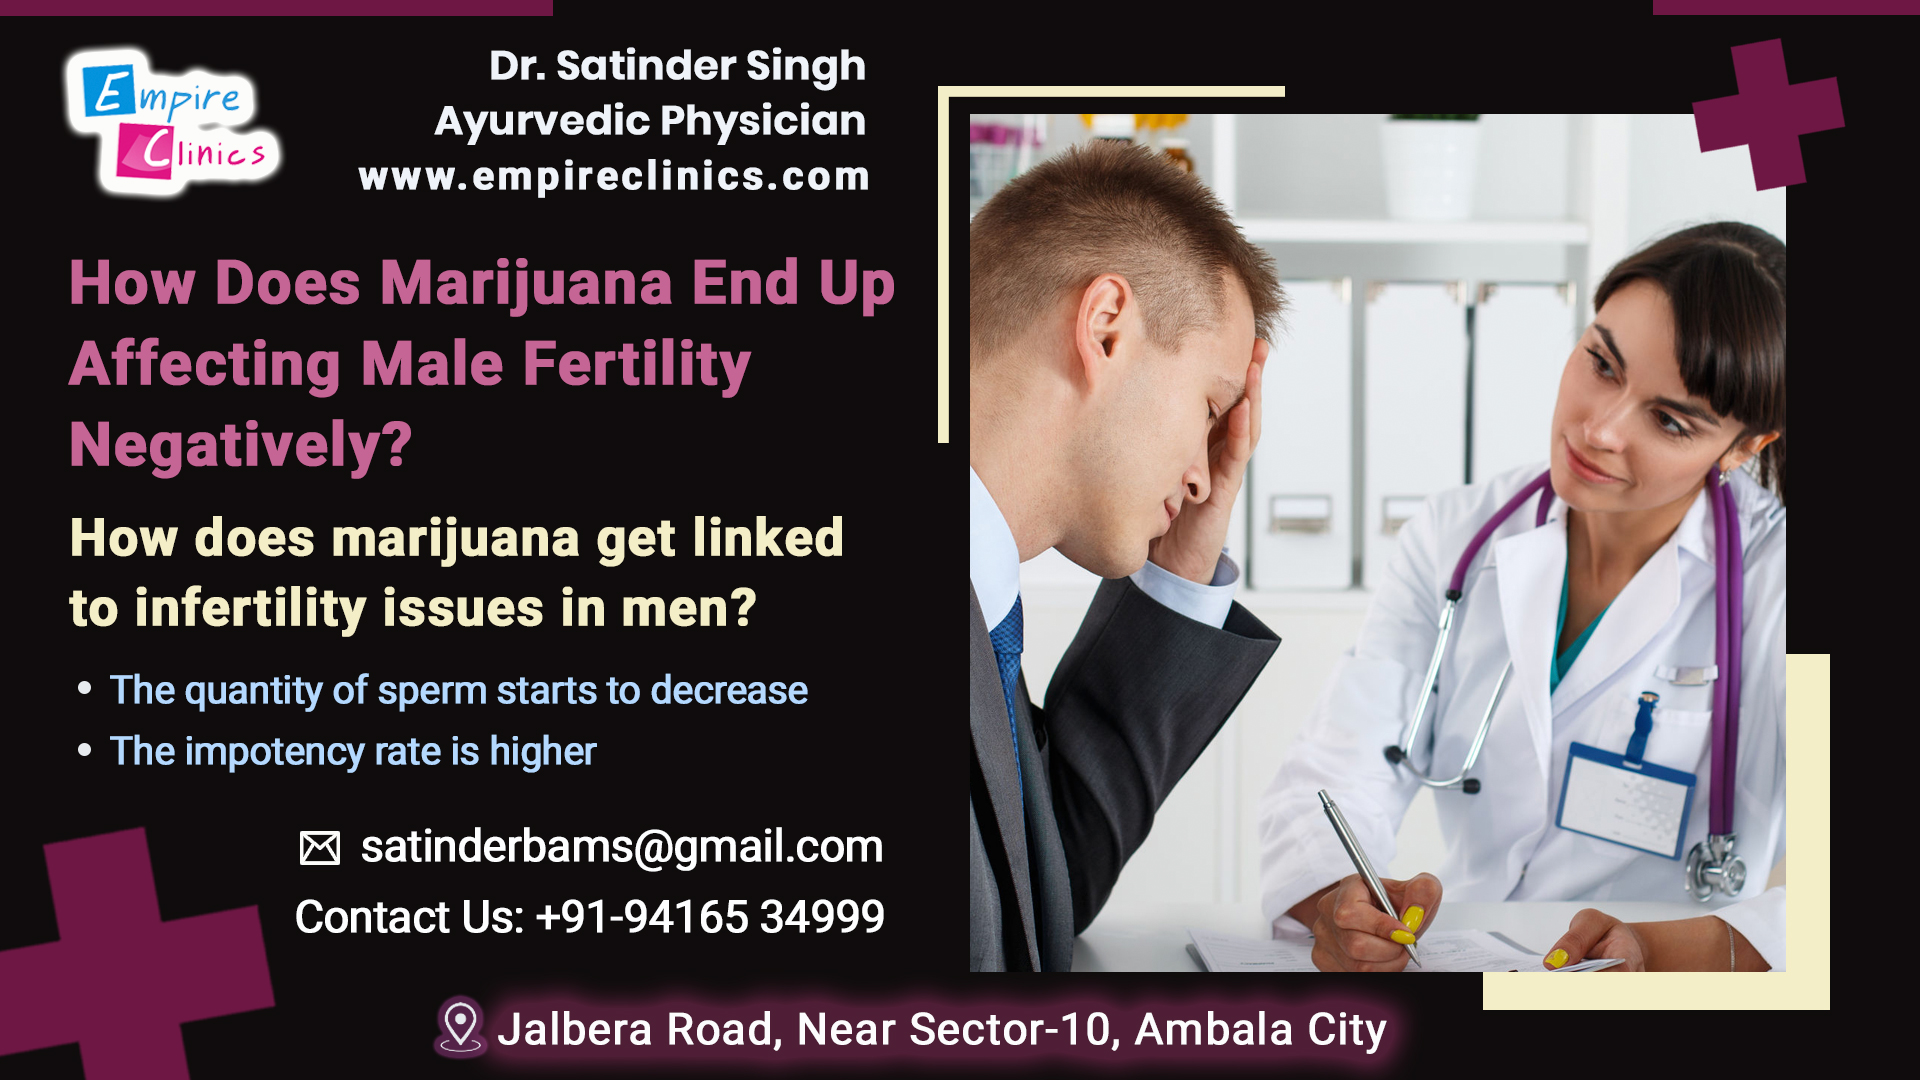 How does Marijuana effects Male Fertility